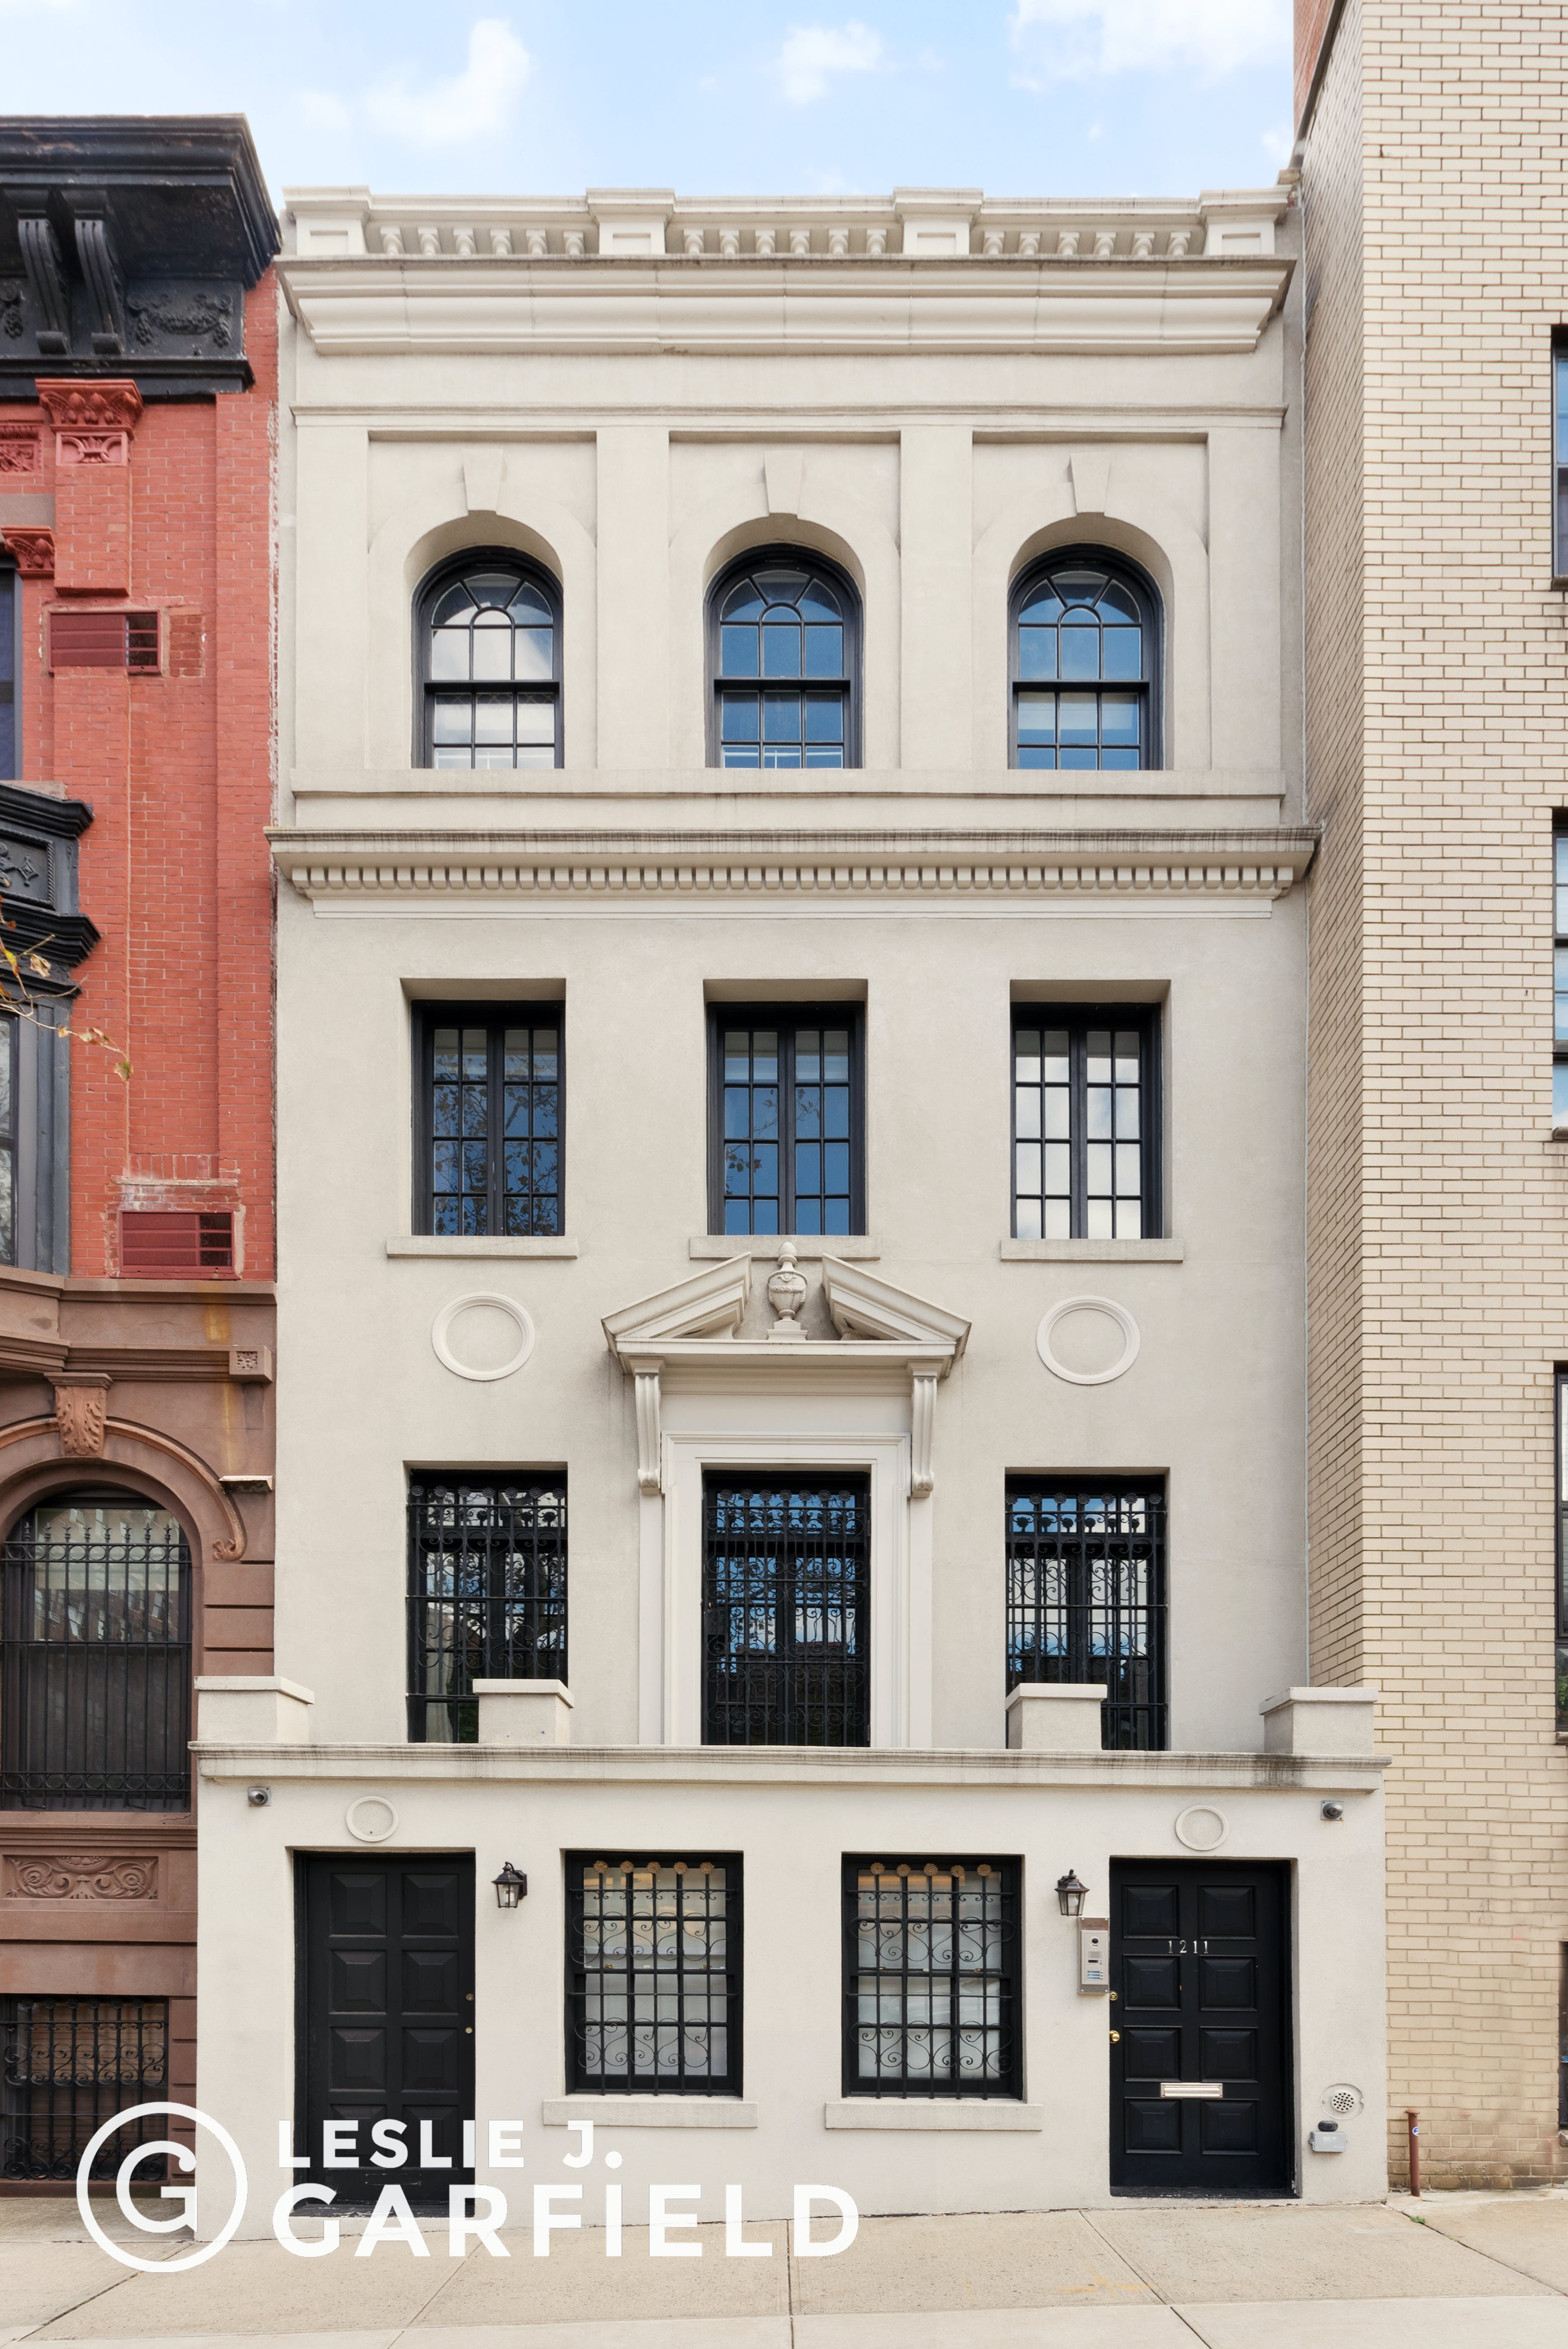 1211 Park Avenue - b038d574-d8ae-427c-9e0c-a8b0f7924bfd - New York City Townhouse Real Estate